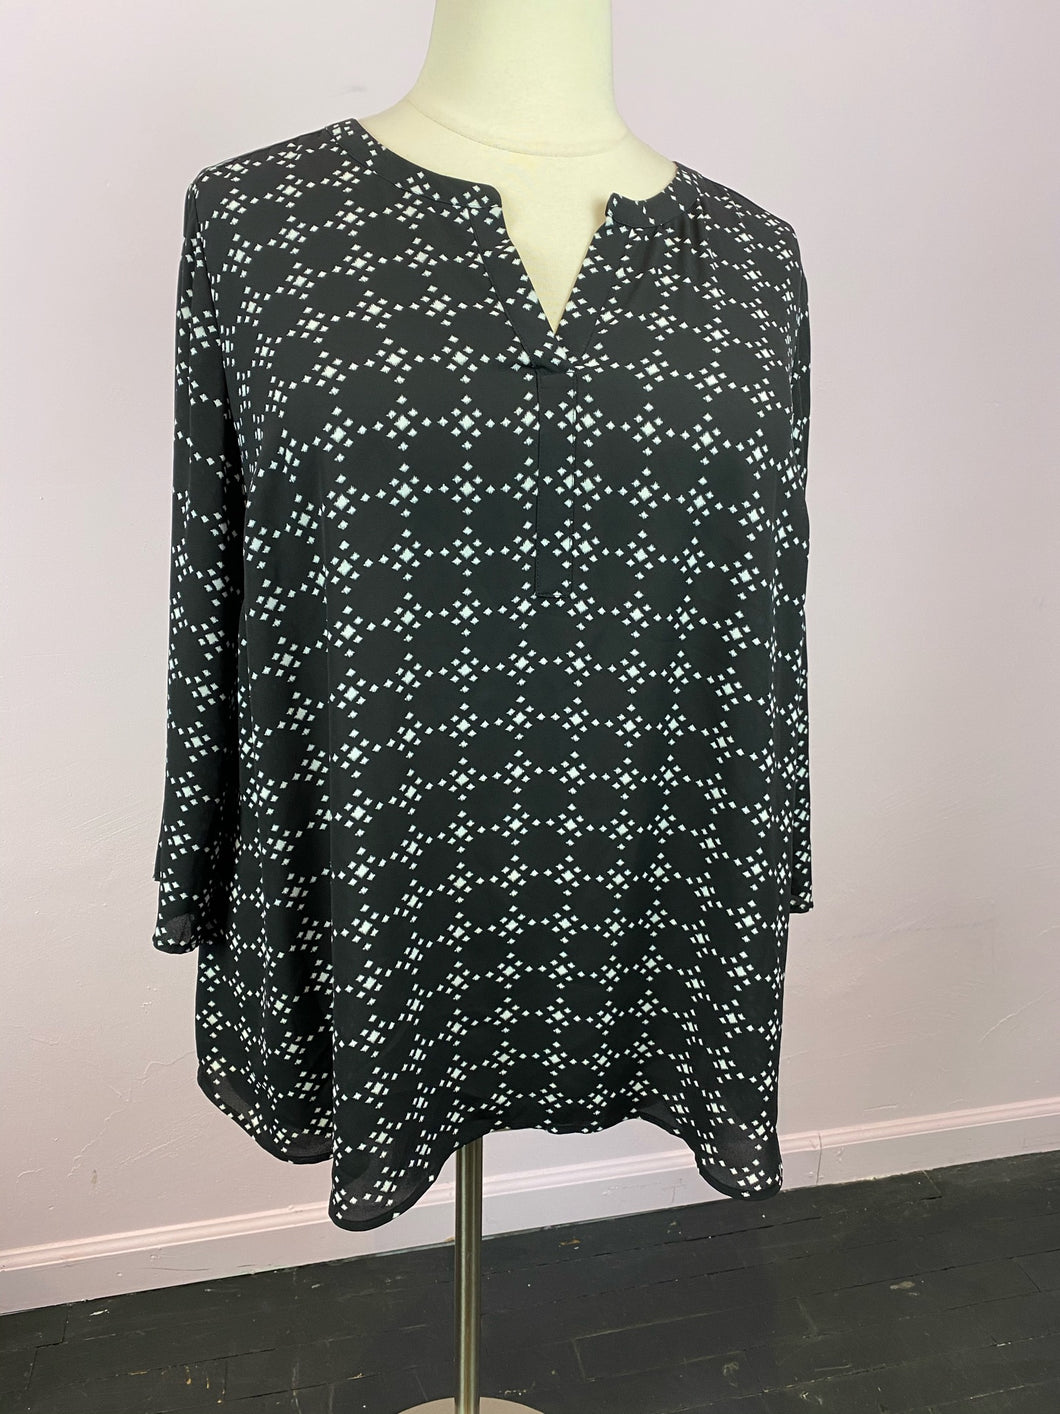 Black Long Sleeve Tunic with White Geometric Pattern by DR2, Size 2X